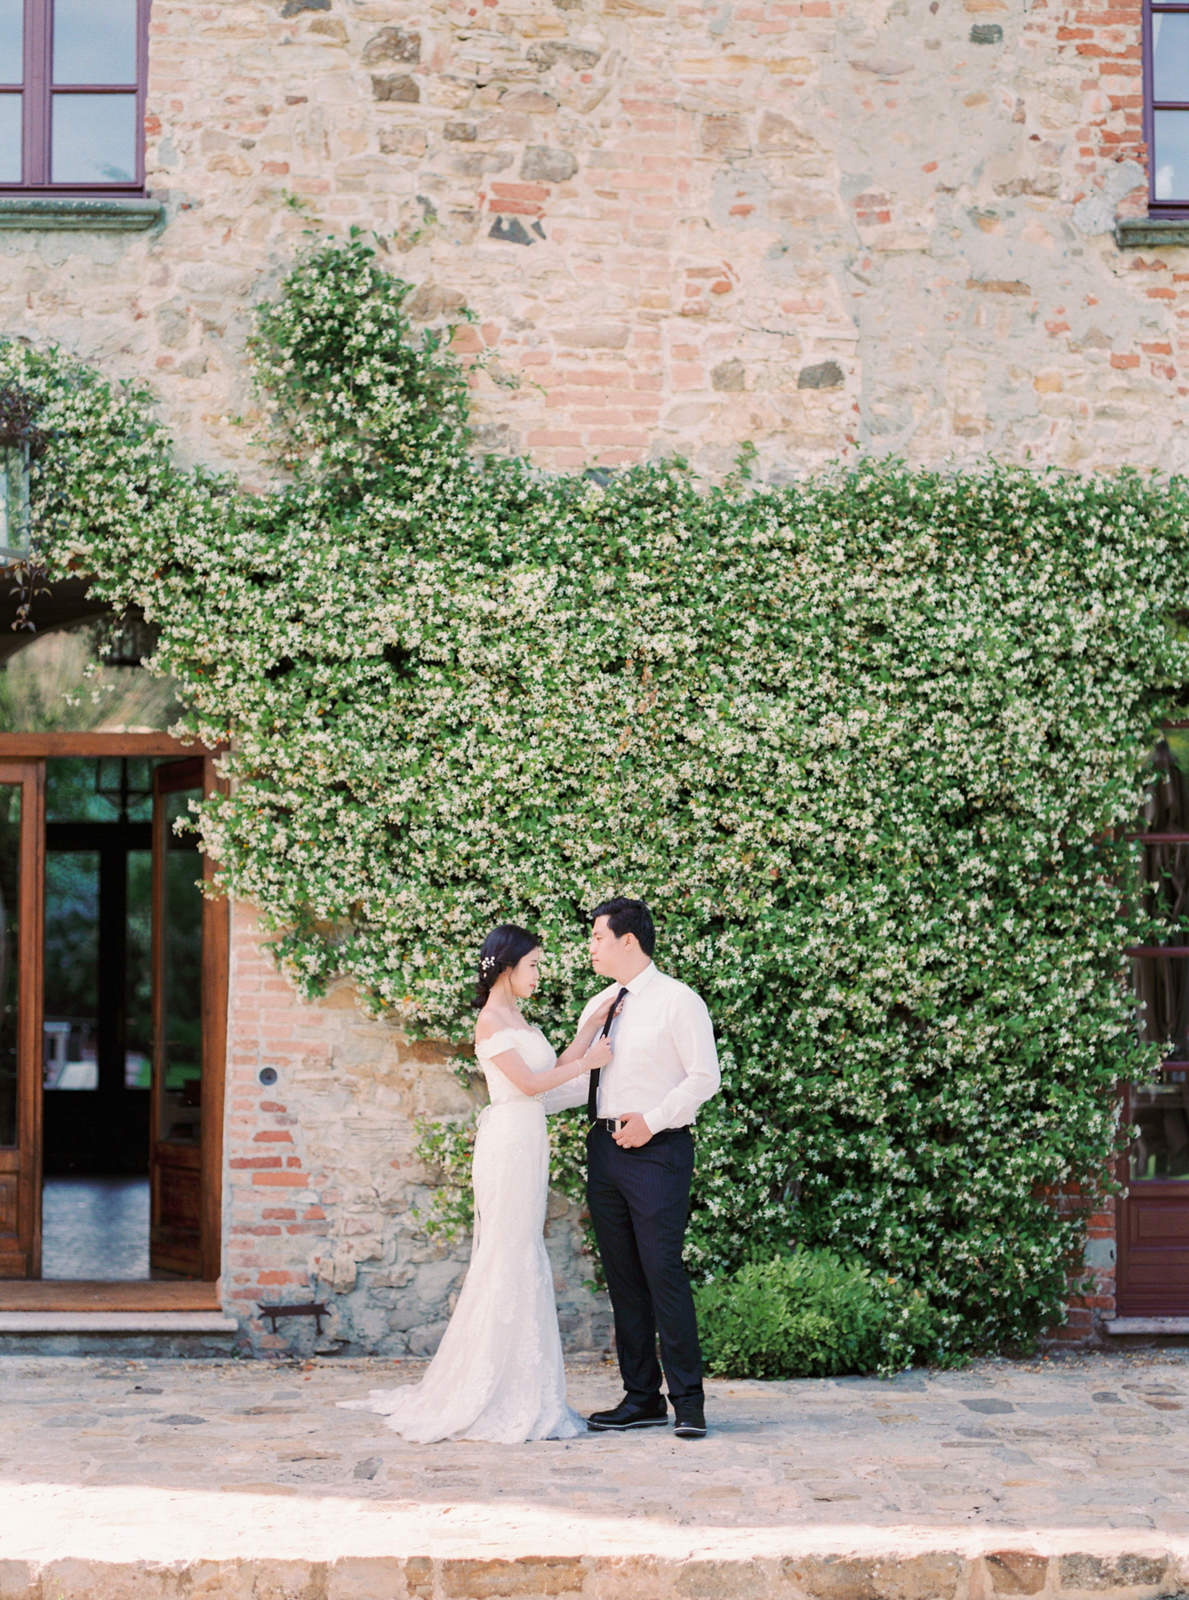 Fine Art Pre-Wedding Photography in Milan Italy by CHYMO & MORE